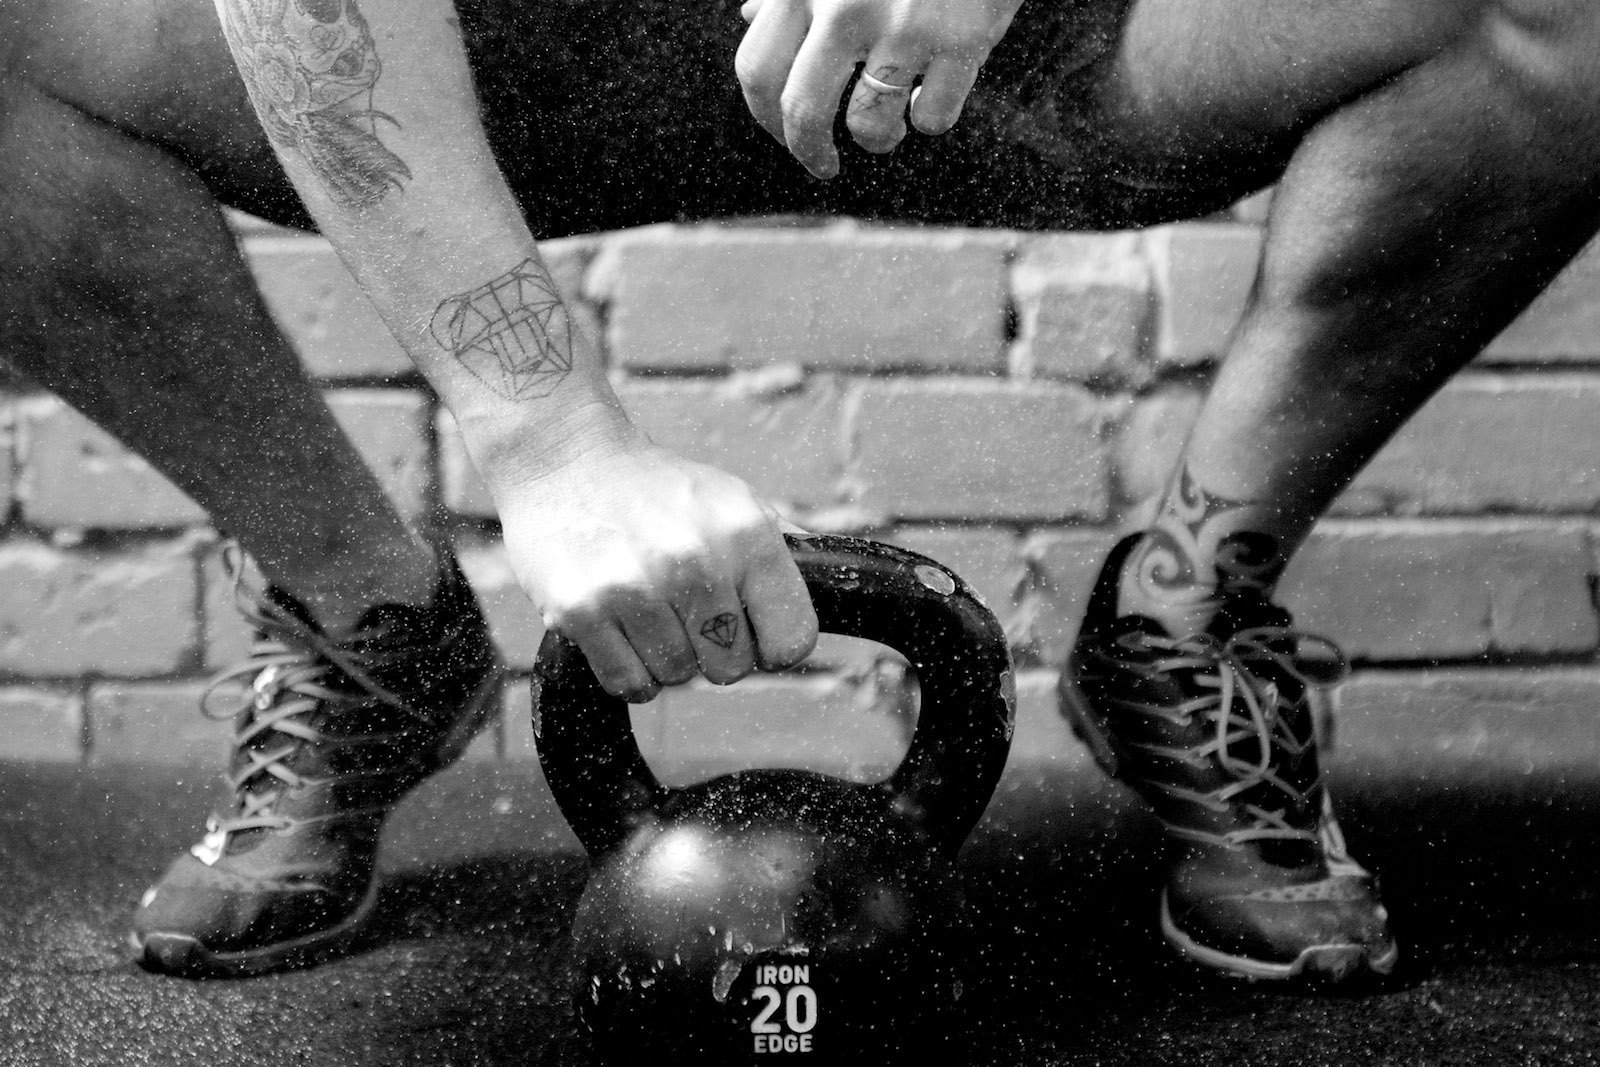 Workout Motivation Wallpaper Hd Falsos Mitos Sobre El Crossfit Toda La Verdad Sobre La